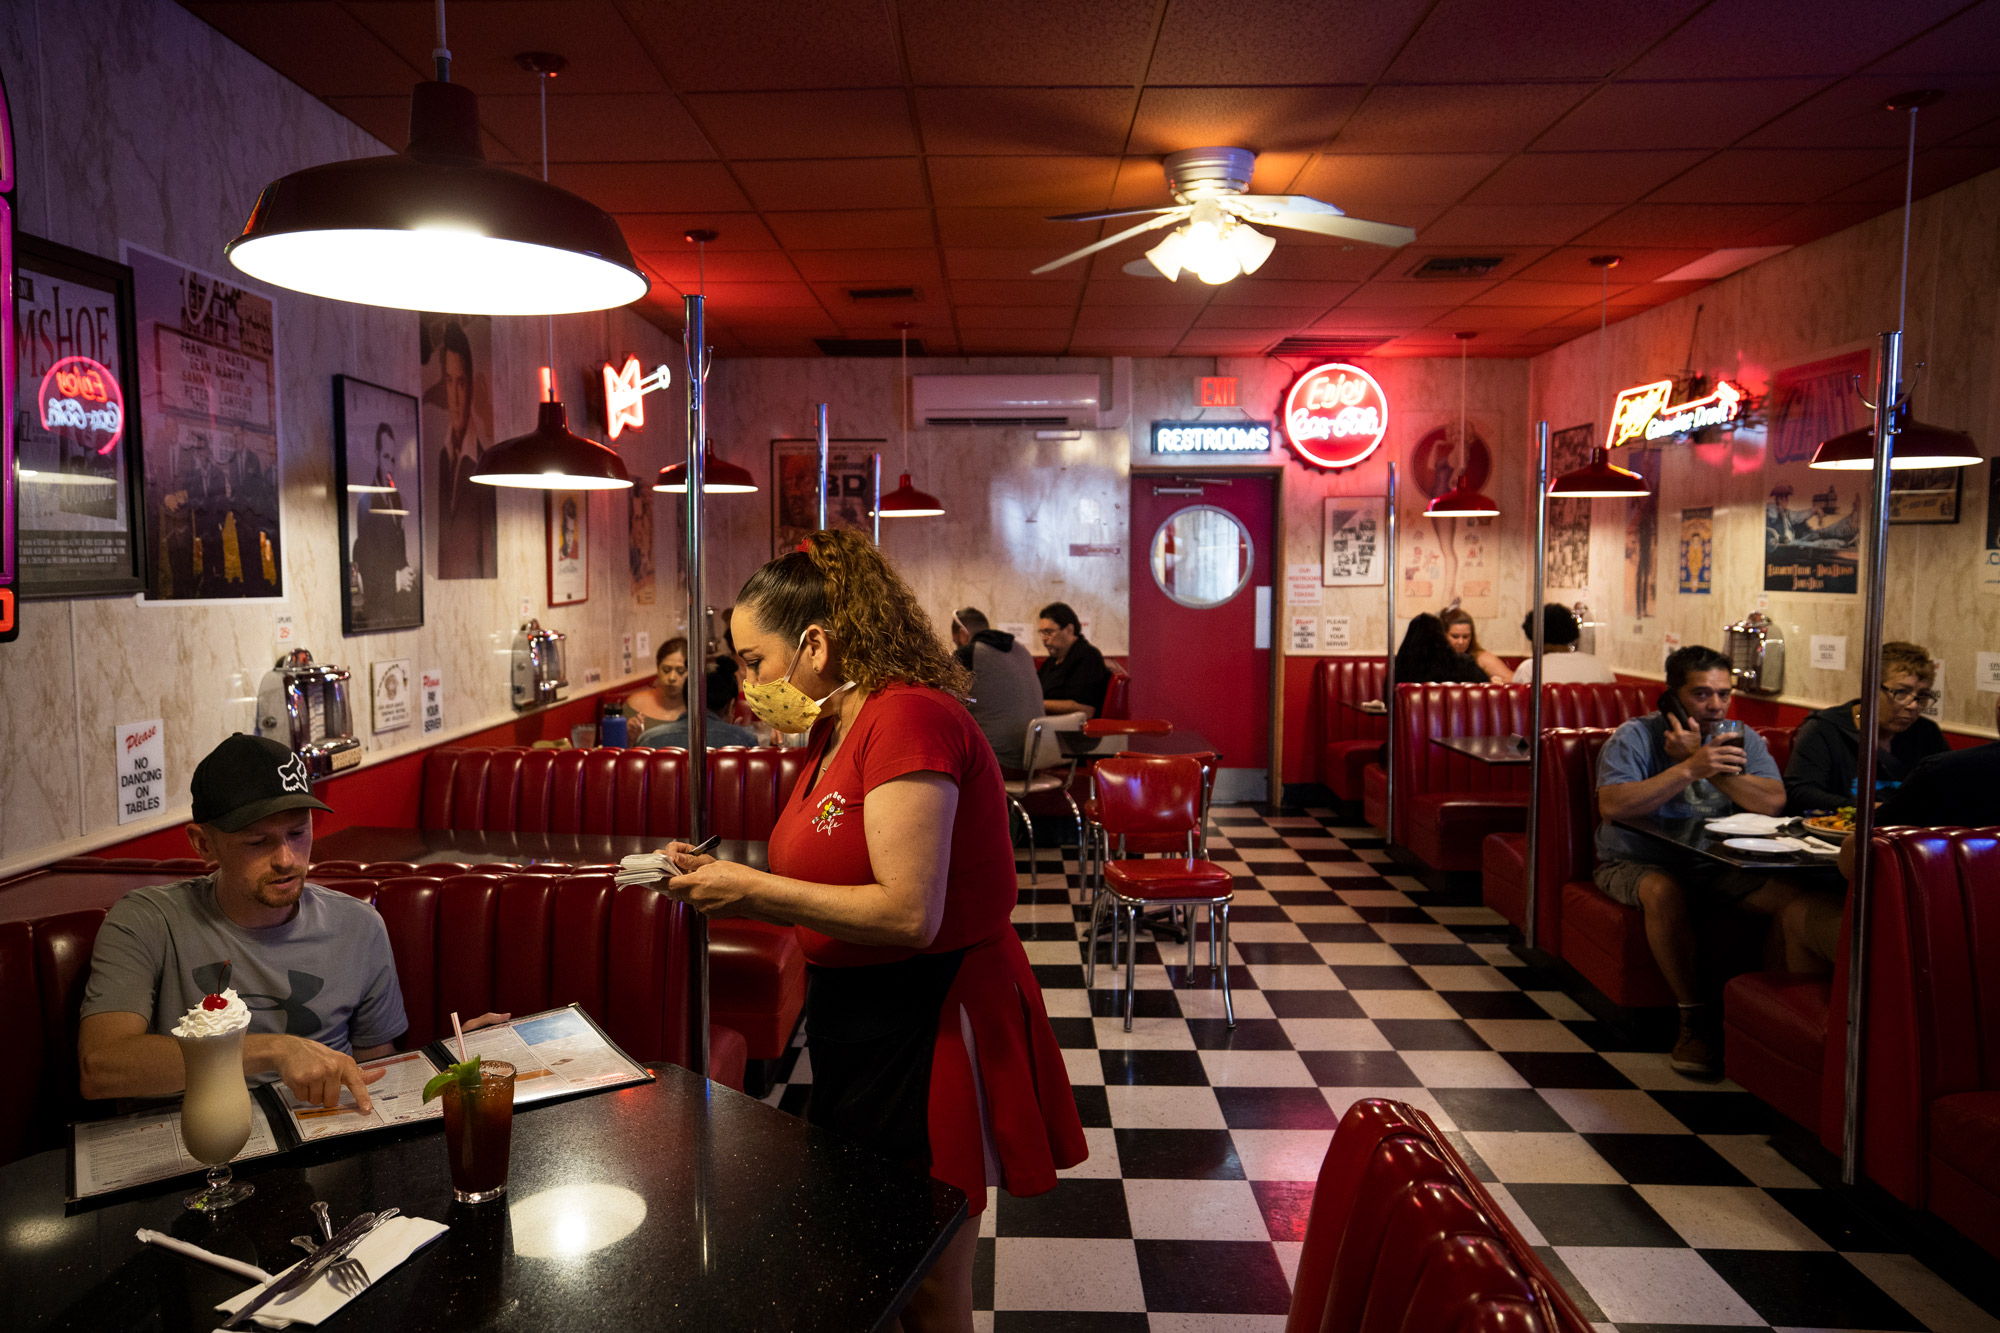 People eat at the Busy Bee Diner on May 24 in Ventura, California.